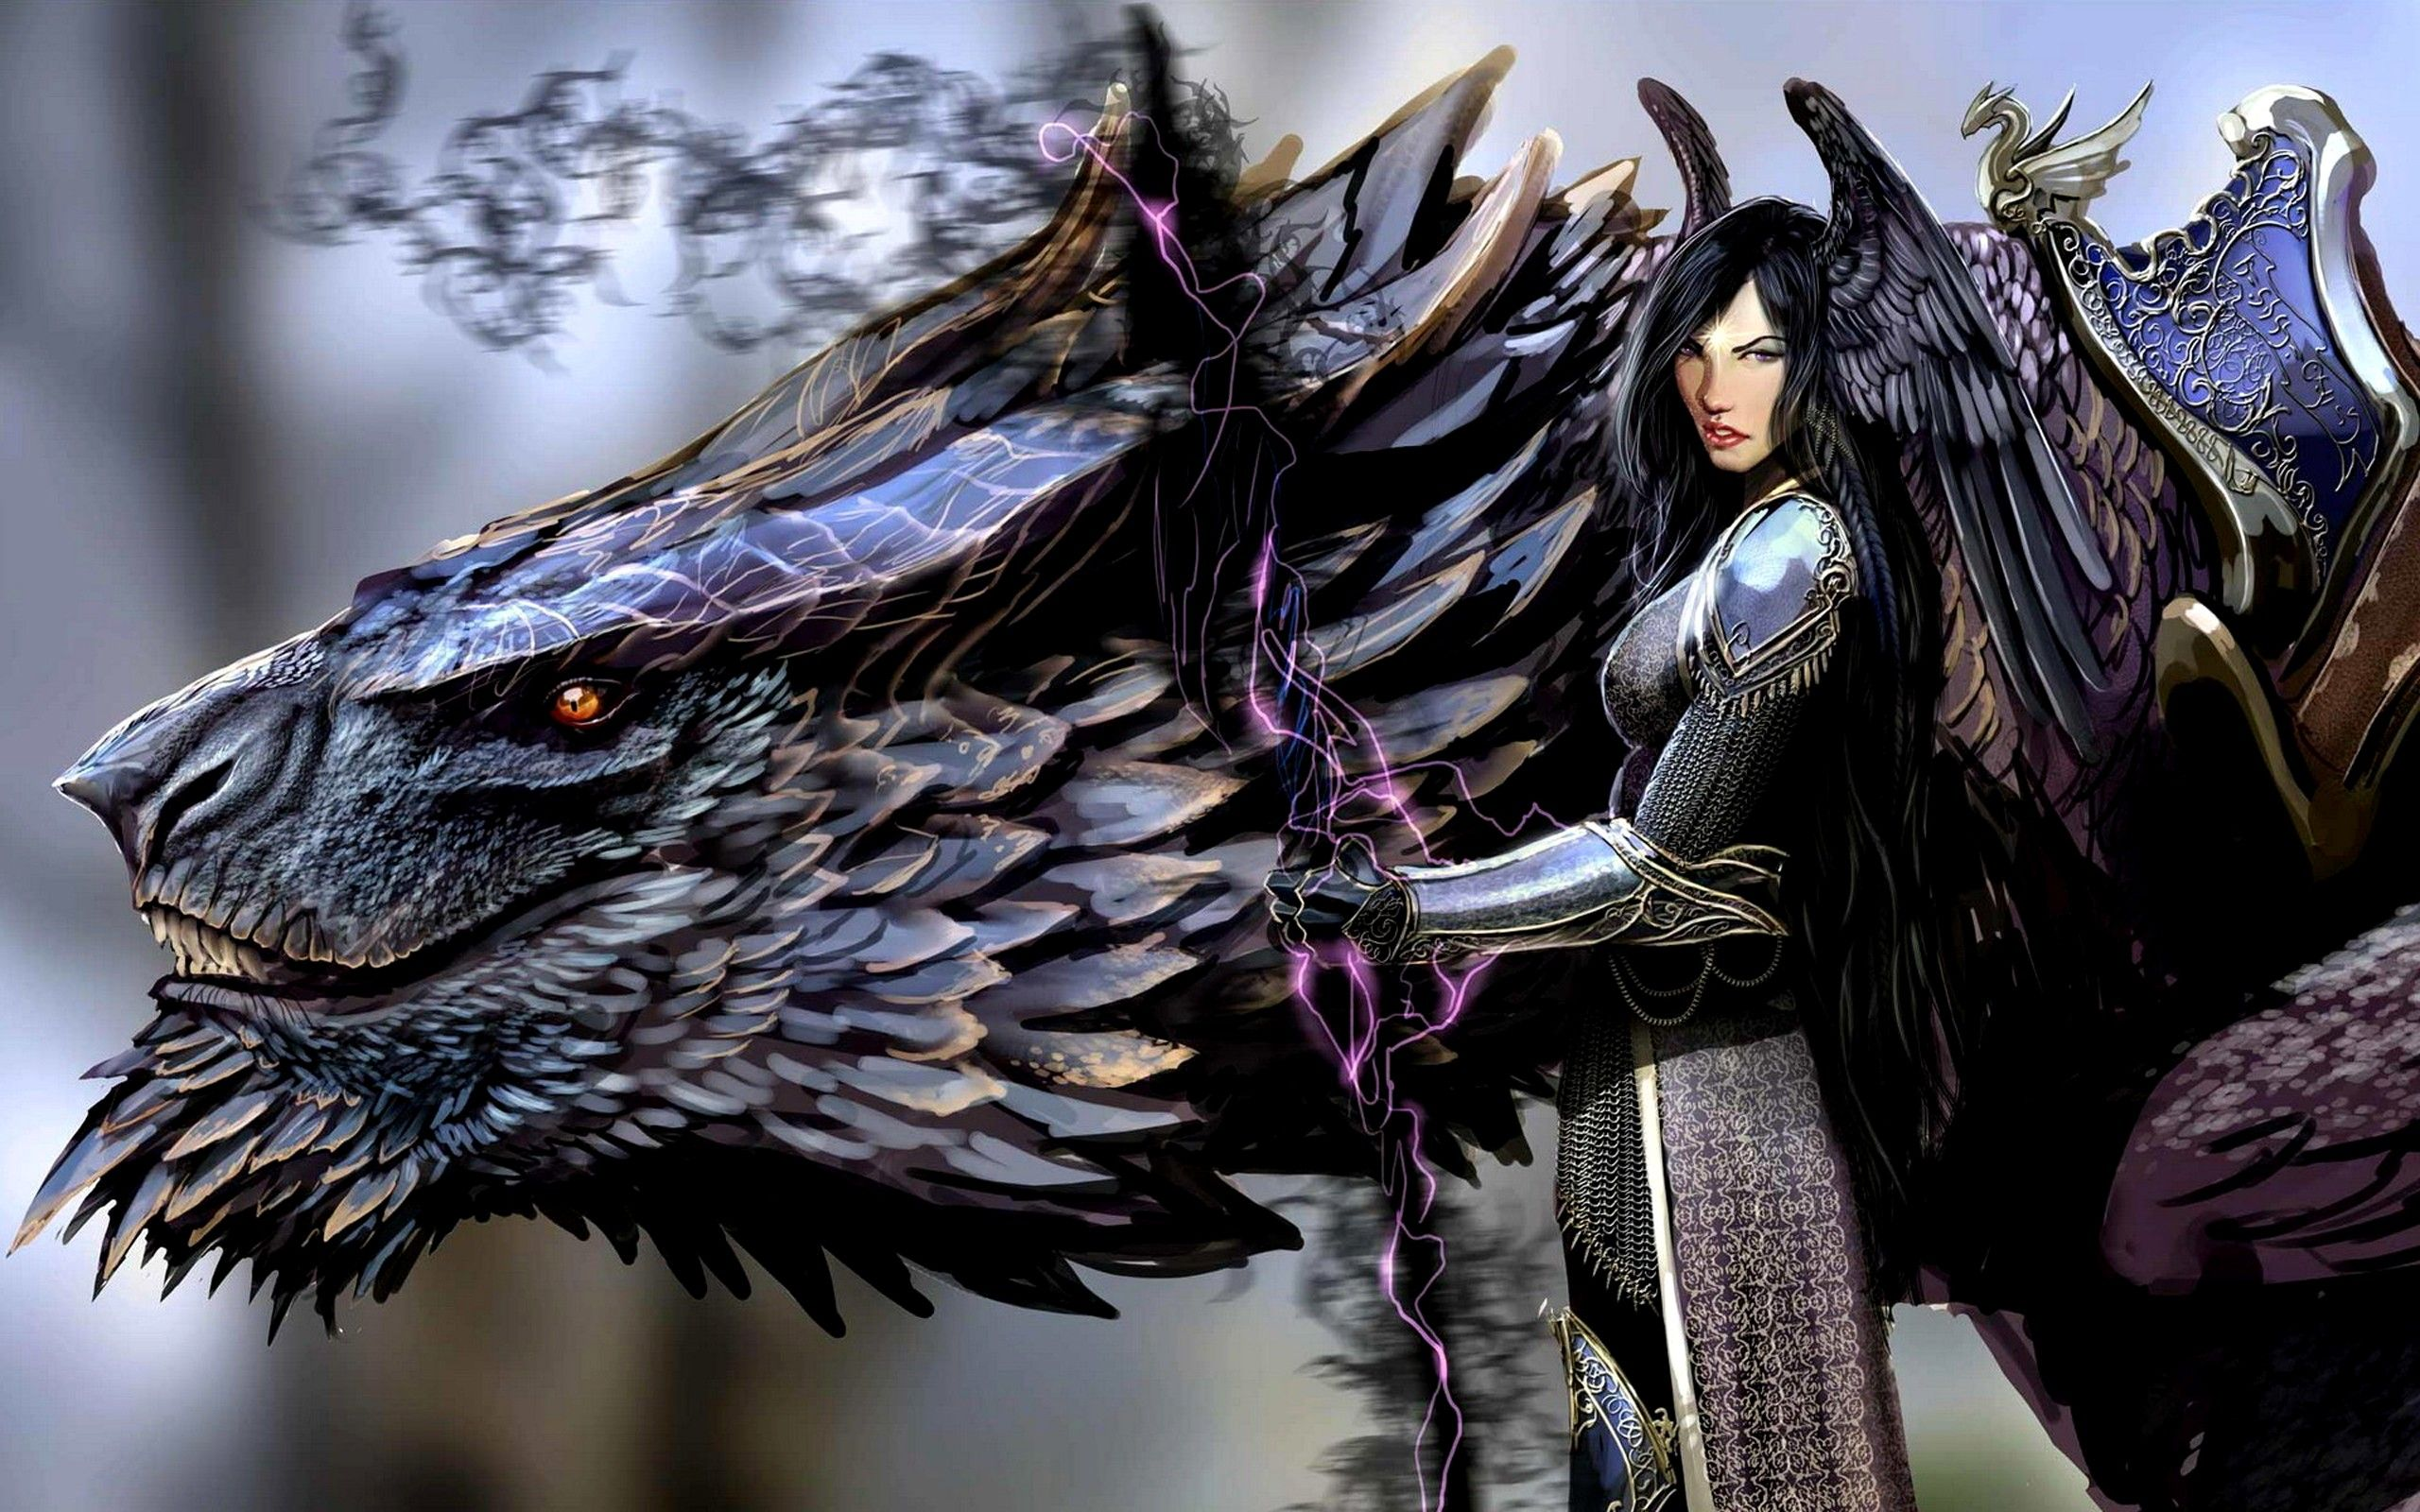 Amazing Dark Angel And Black Dragon Anime Hd Wallpaper Picture